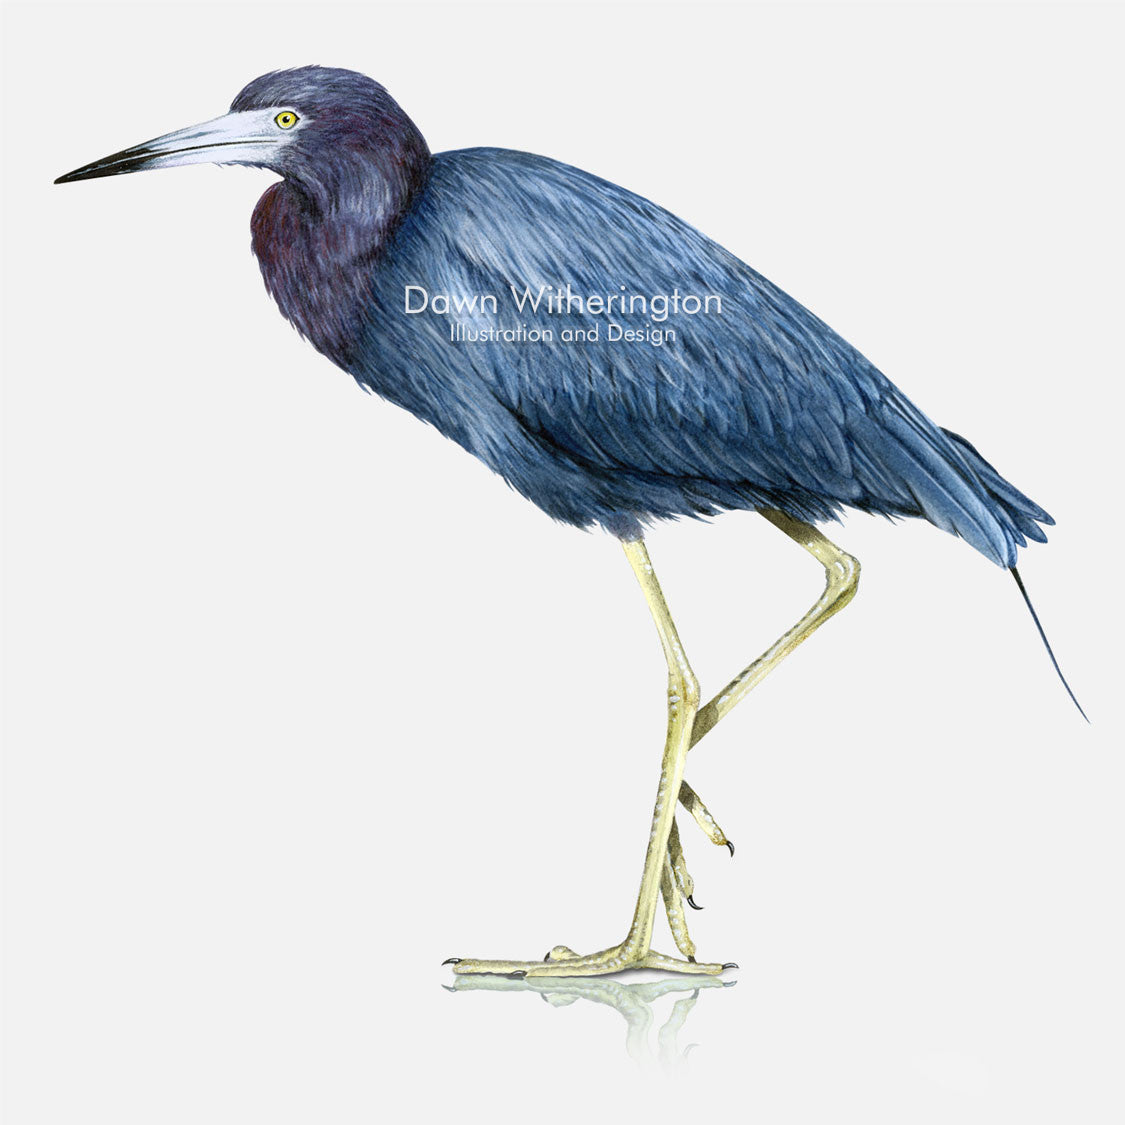 This beautiful illustration of a little blue heron, Egretta caerulea, is biologically accurate in detail.